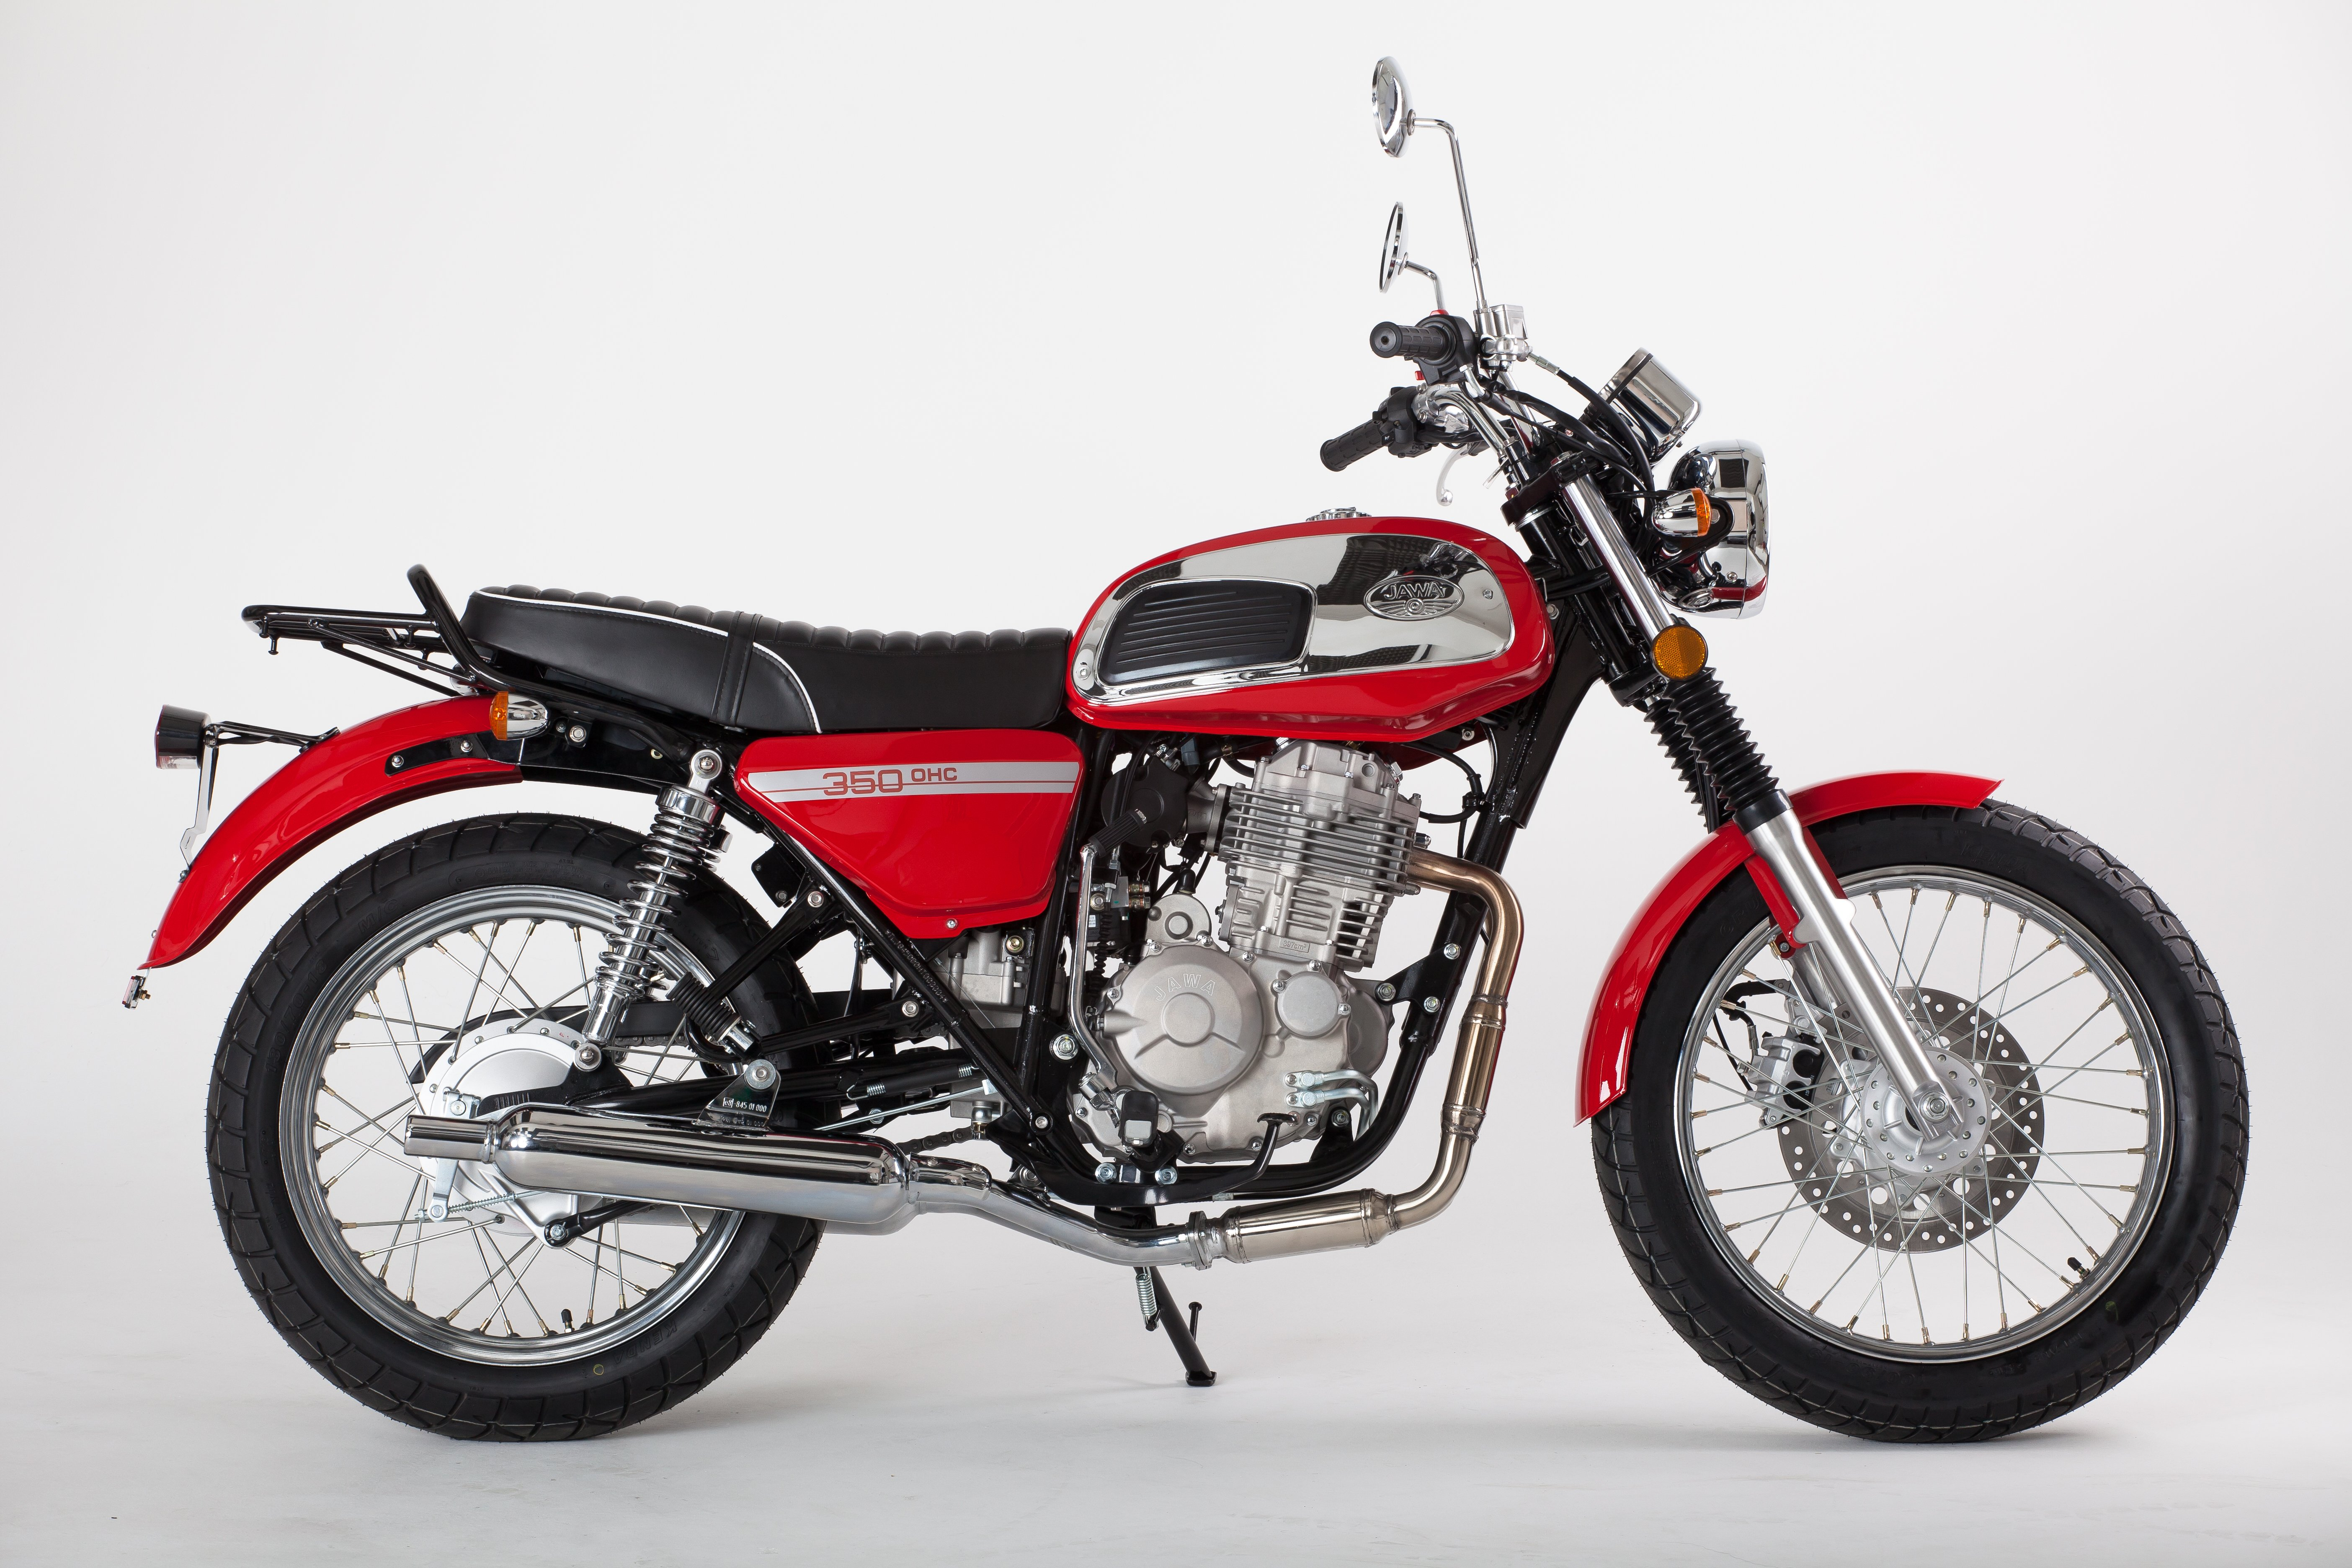 Nuove Jawa 350 ohc e 660 Vintage Galerie-350-4